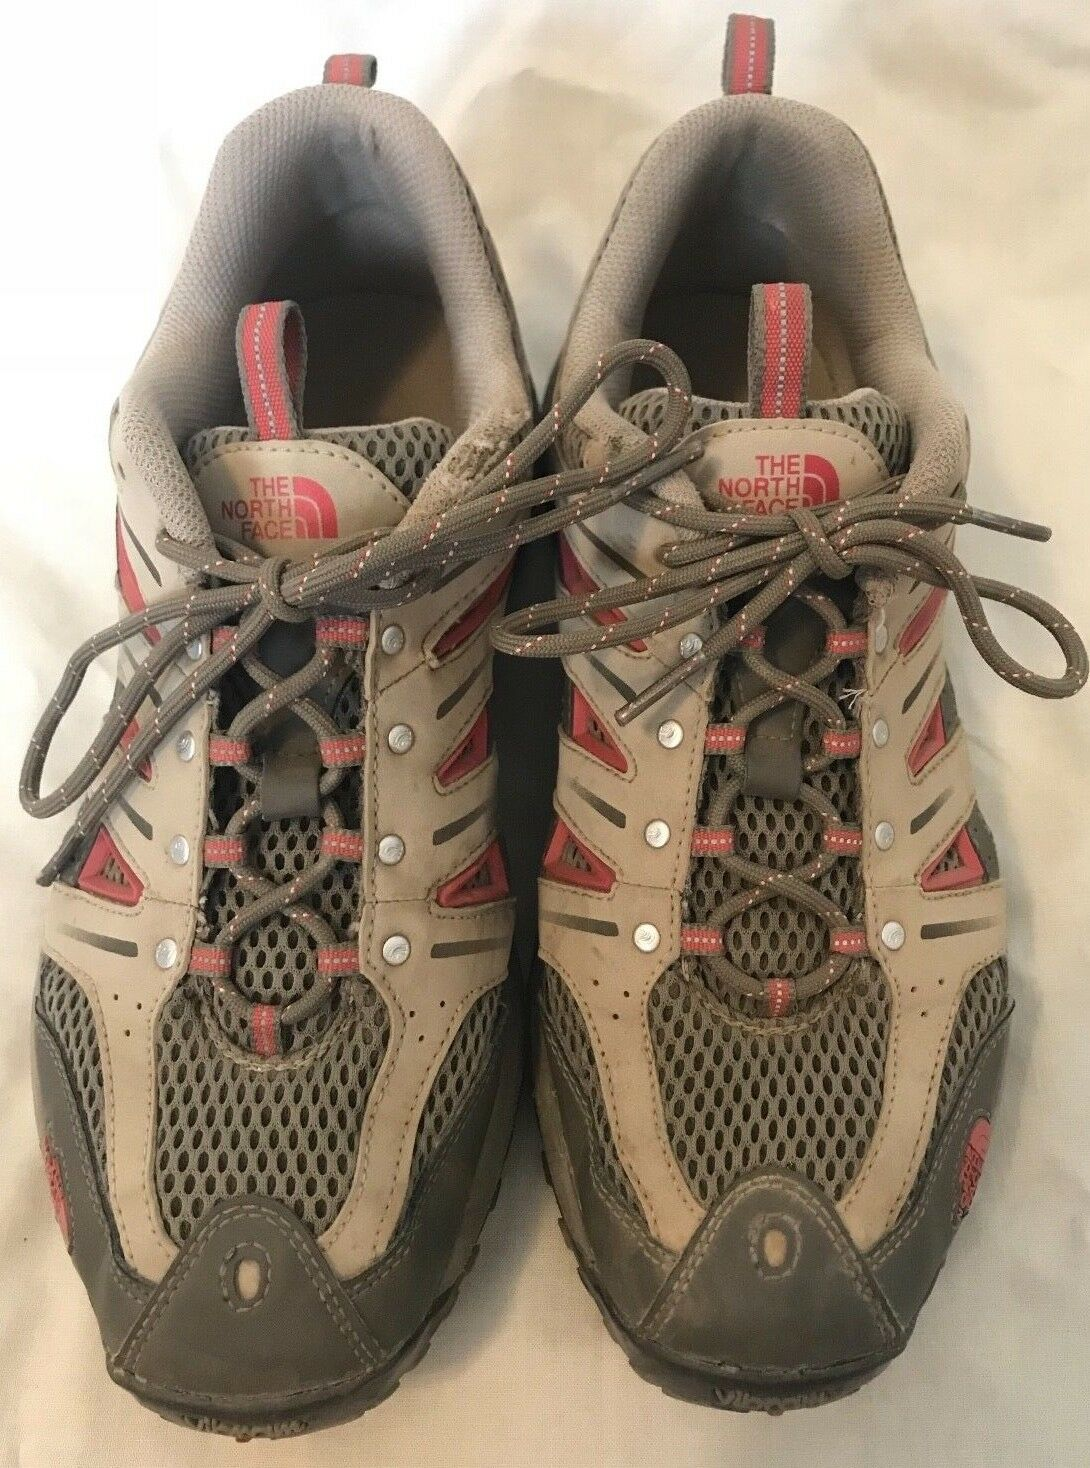 The North Face Women's Vibram Hiking Trail shoes Sneakers Size 9.5